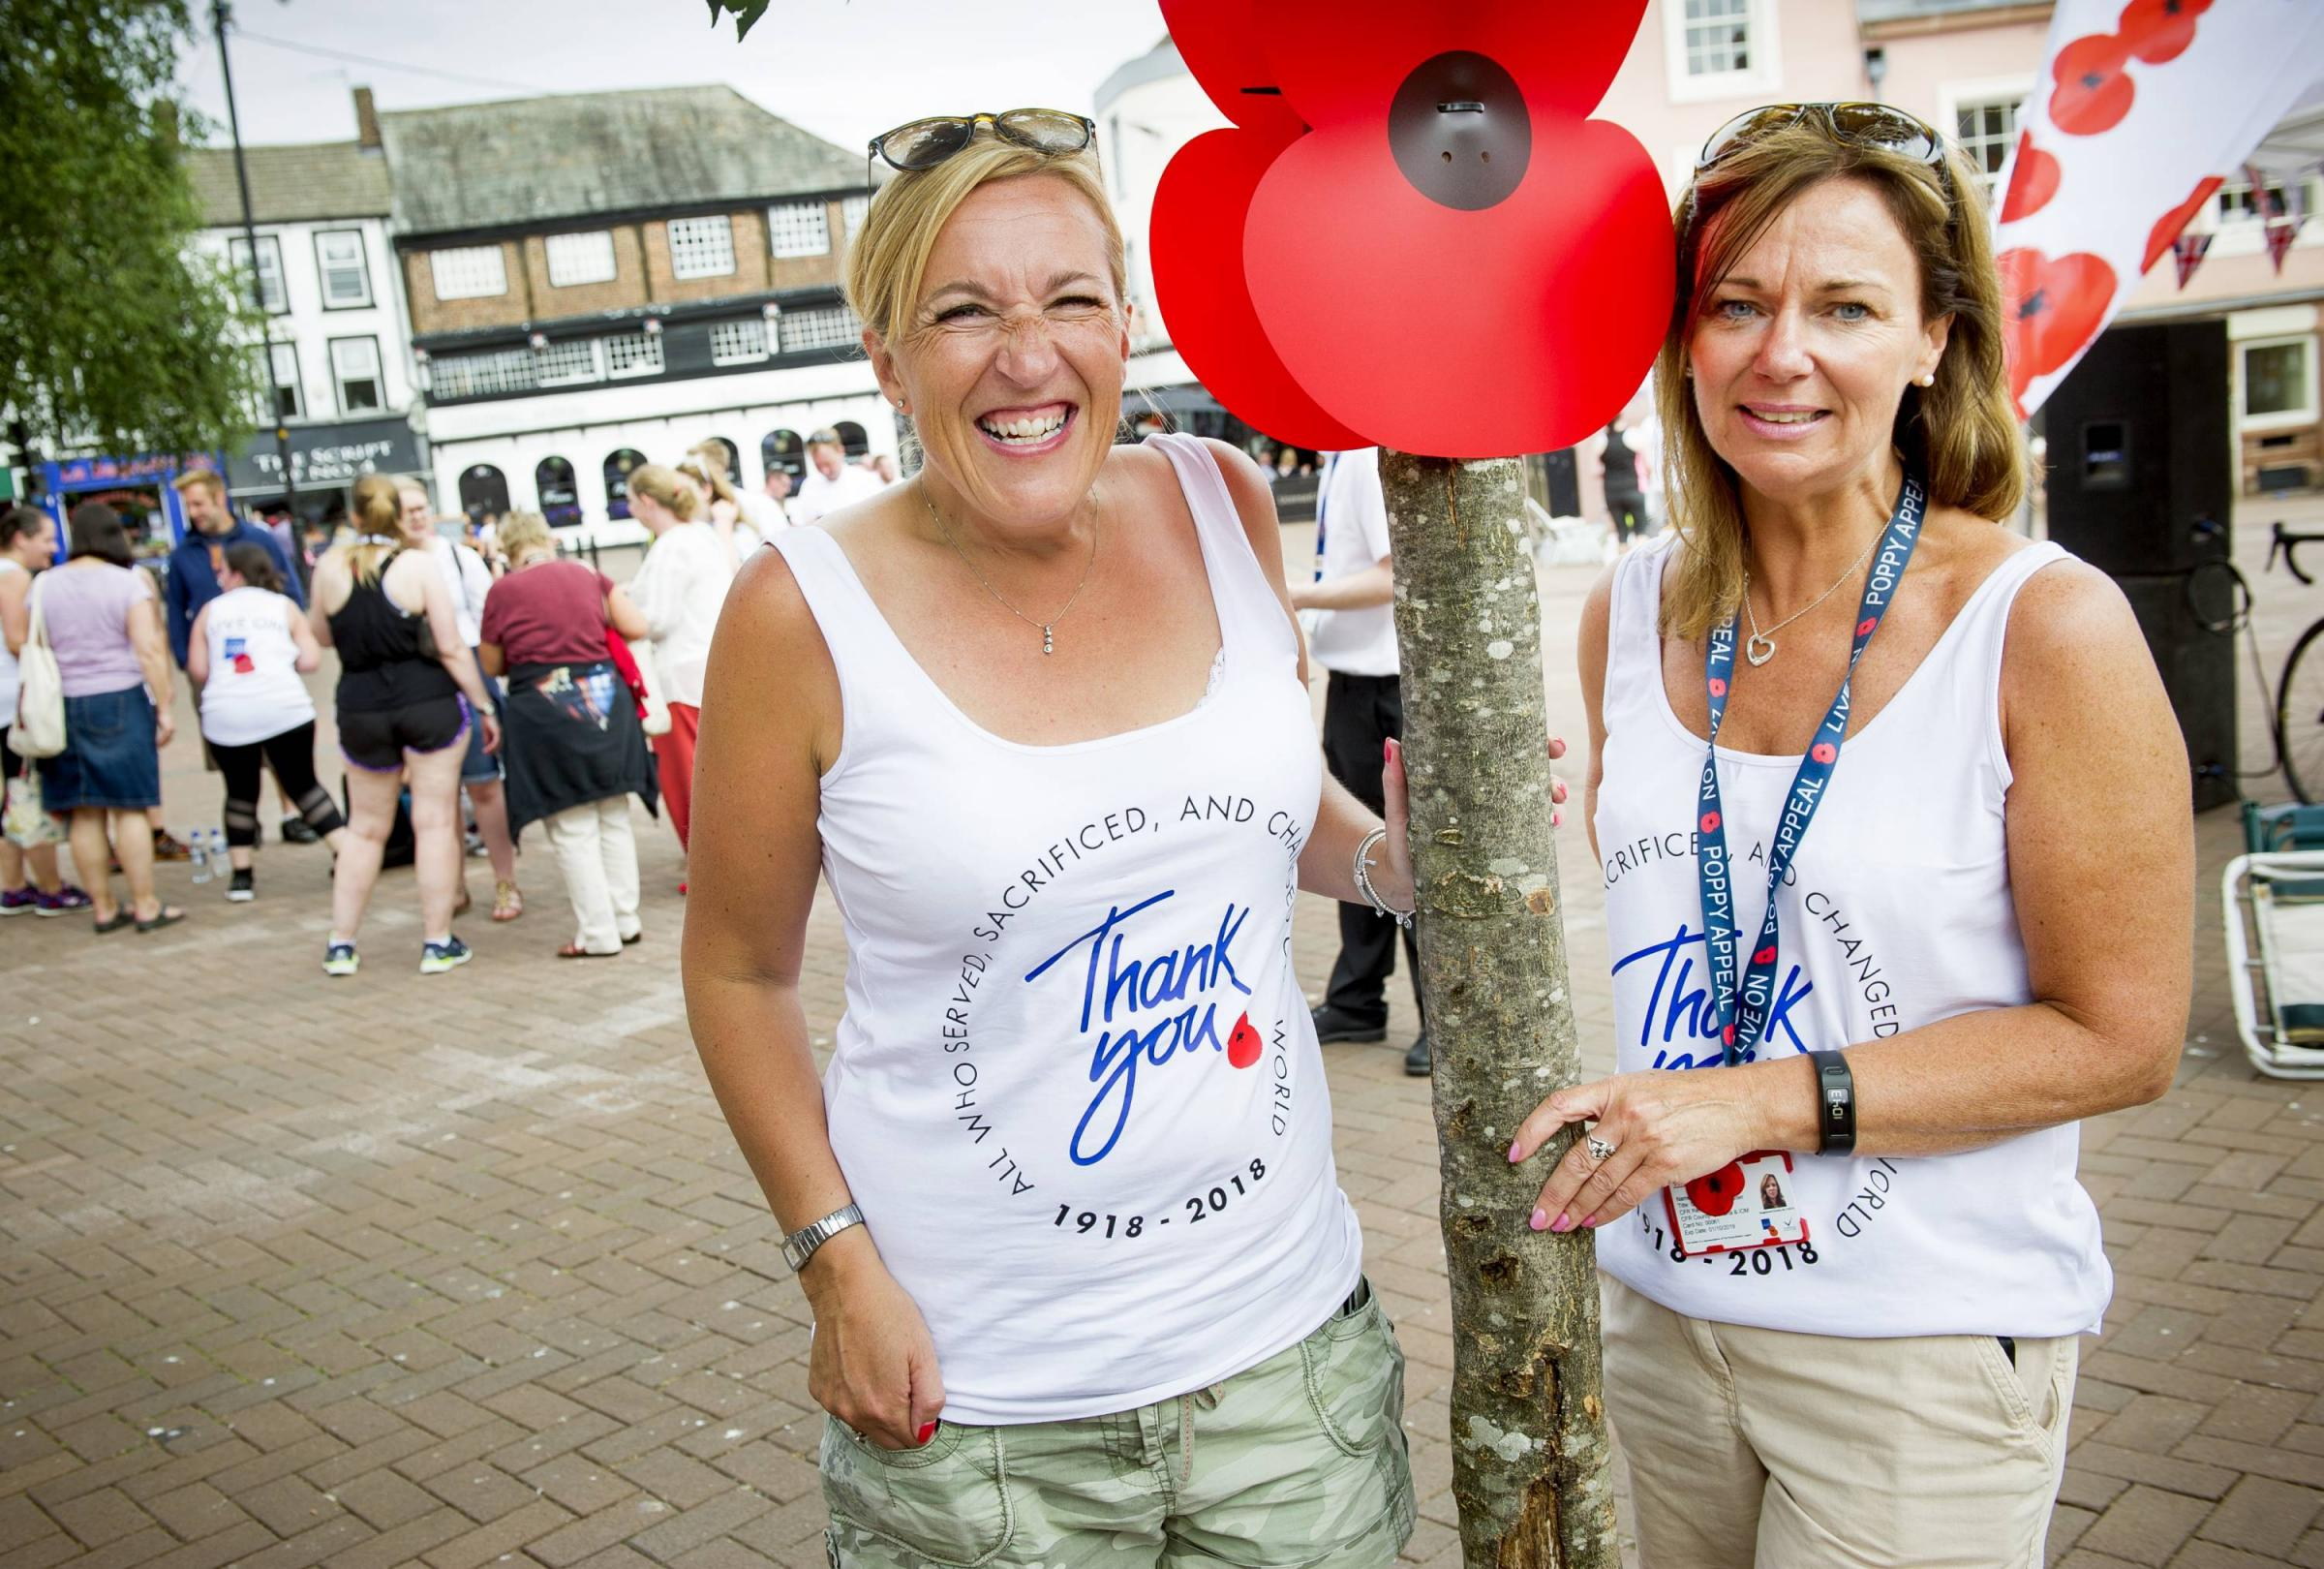 Cumbria poppy appeal tops £700,000 for first time ever